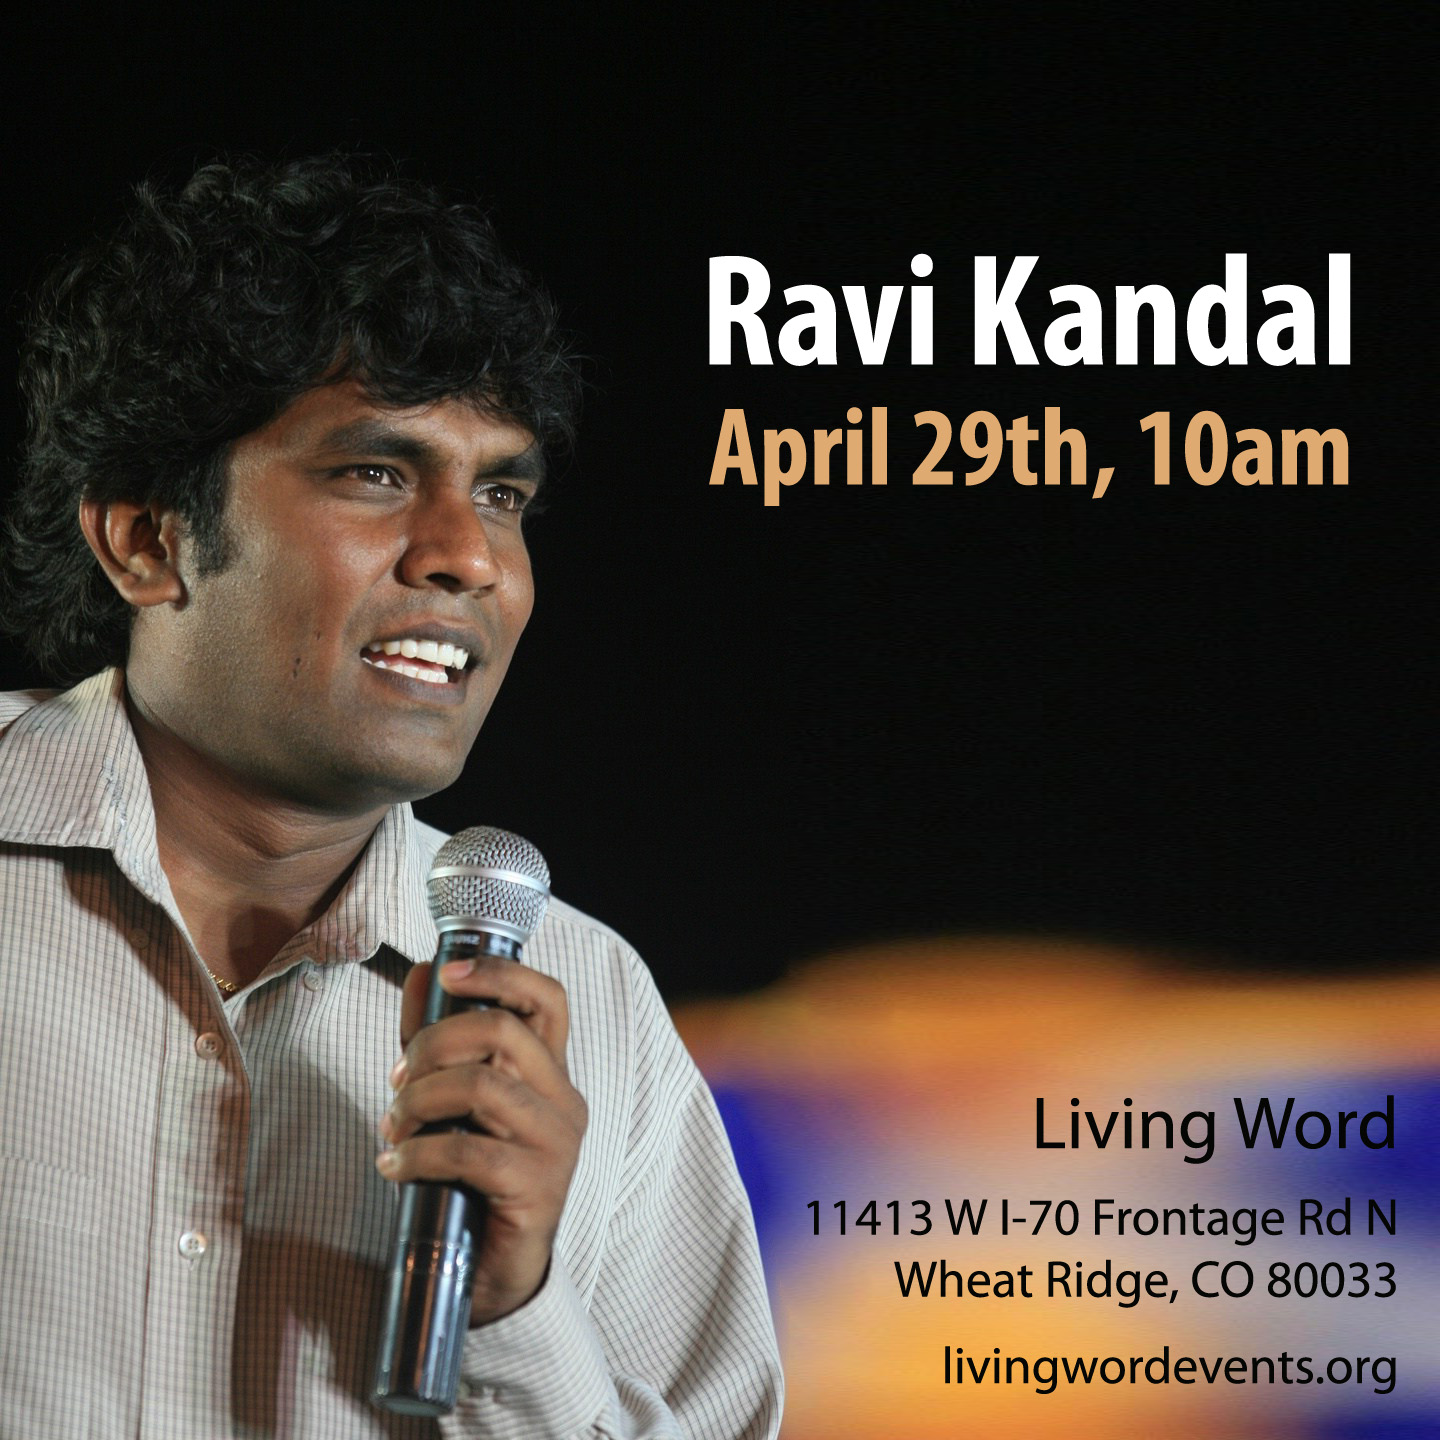 Sunday Service with Ravi Kandal